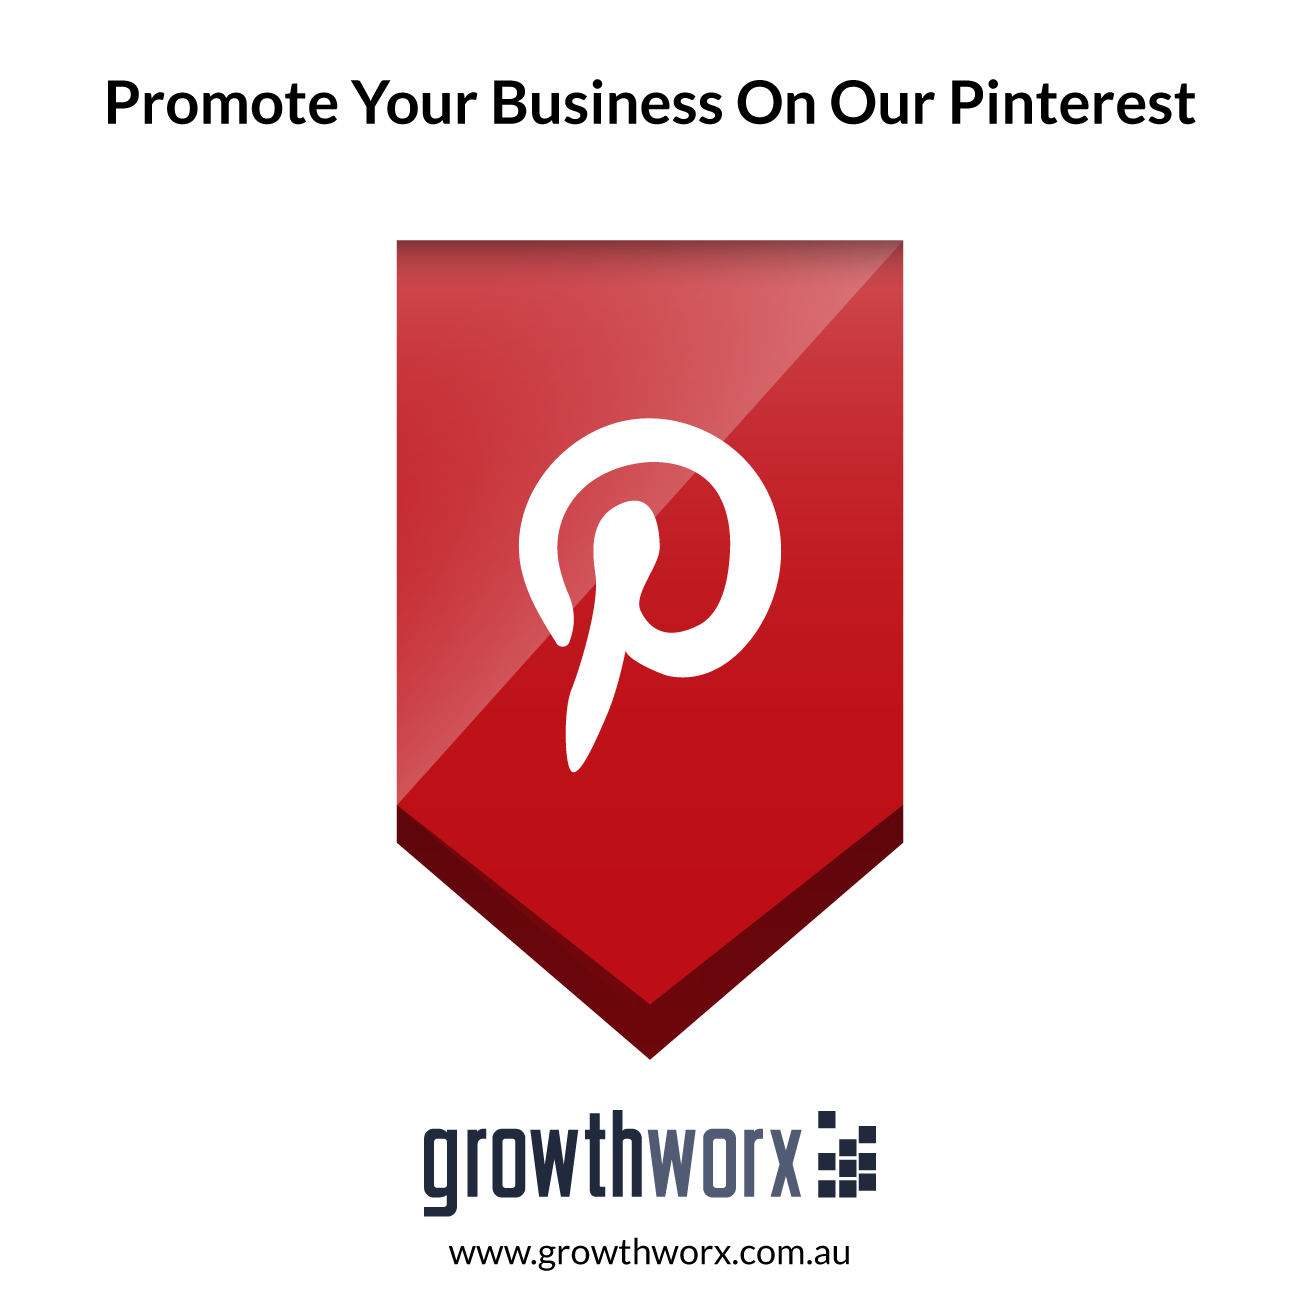 We will promote your product, business, or website on our pinterest 1